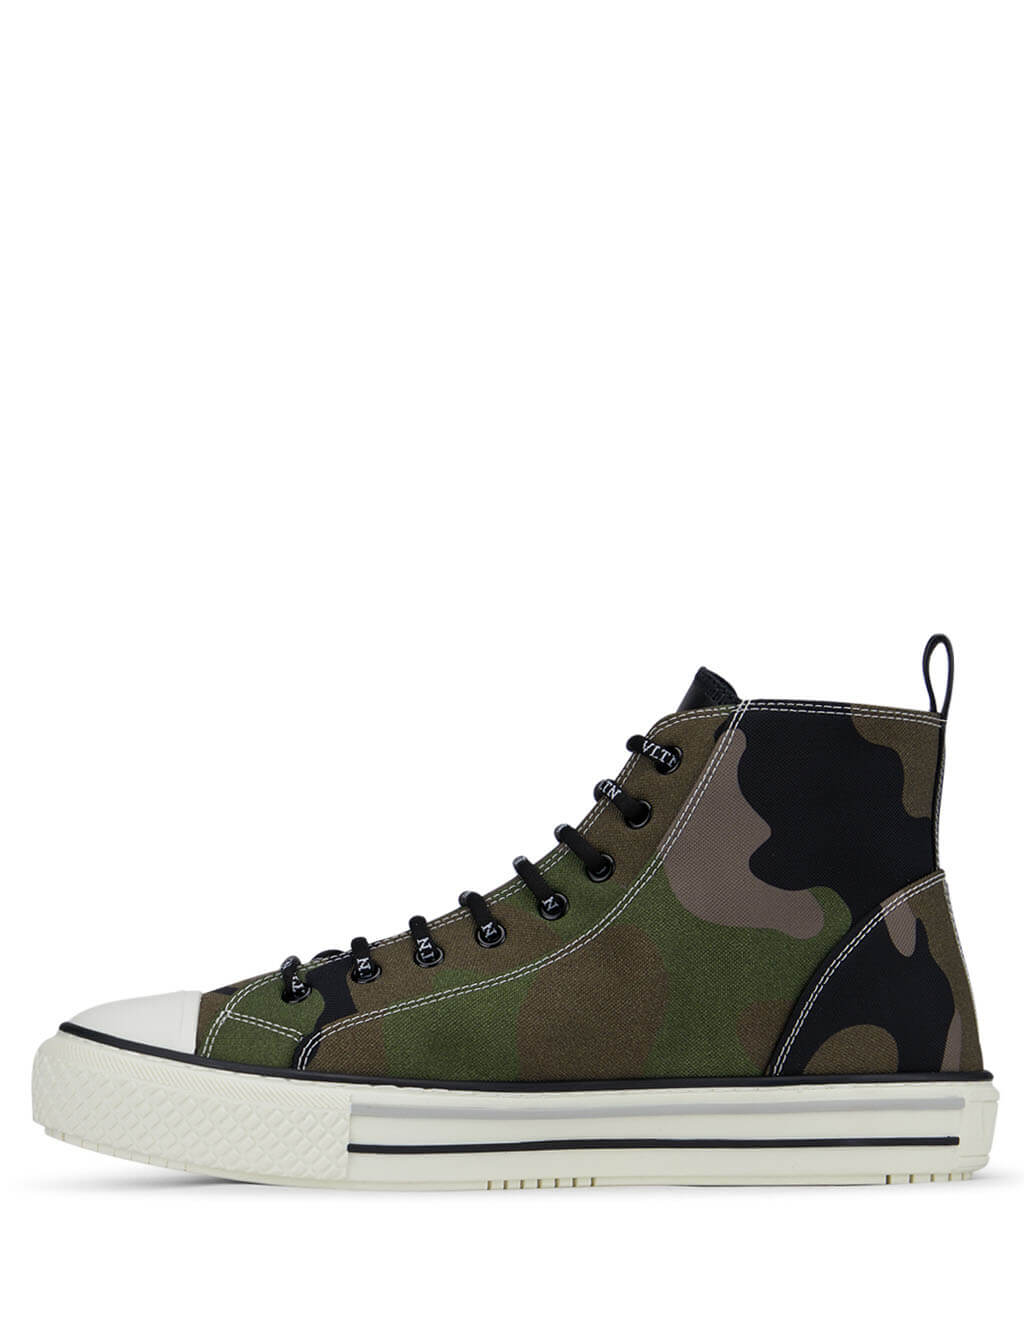 Men's Valentino Giggies VLTN Sneakers in Camo - UY2S0723XVUIJ7